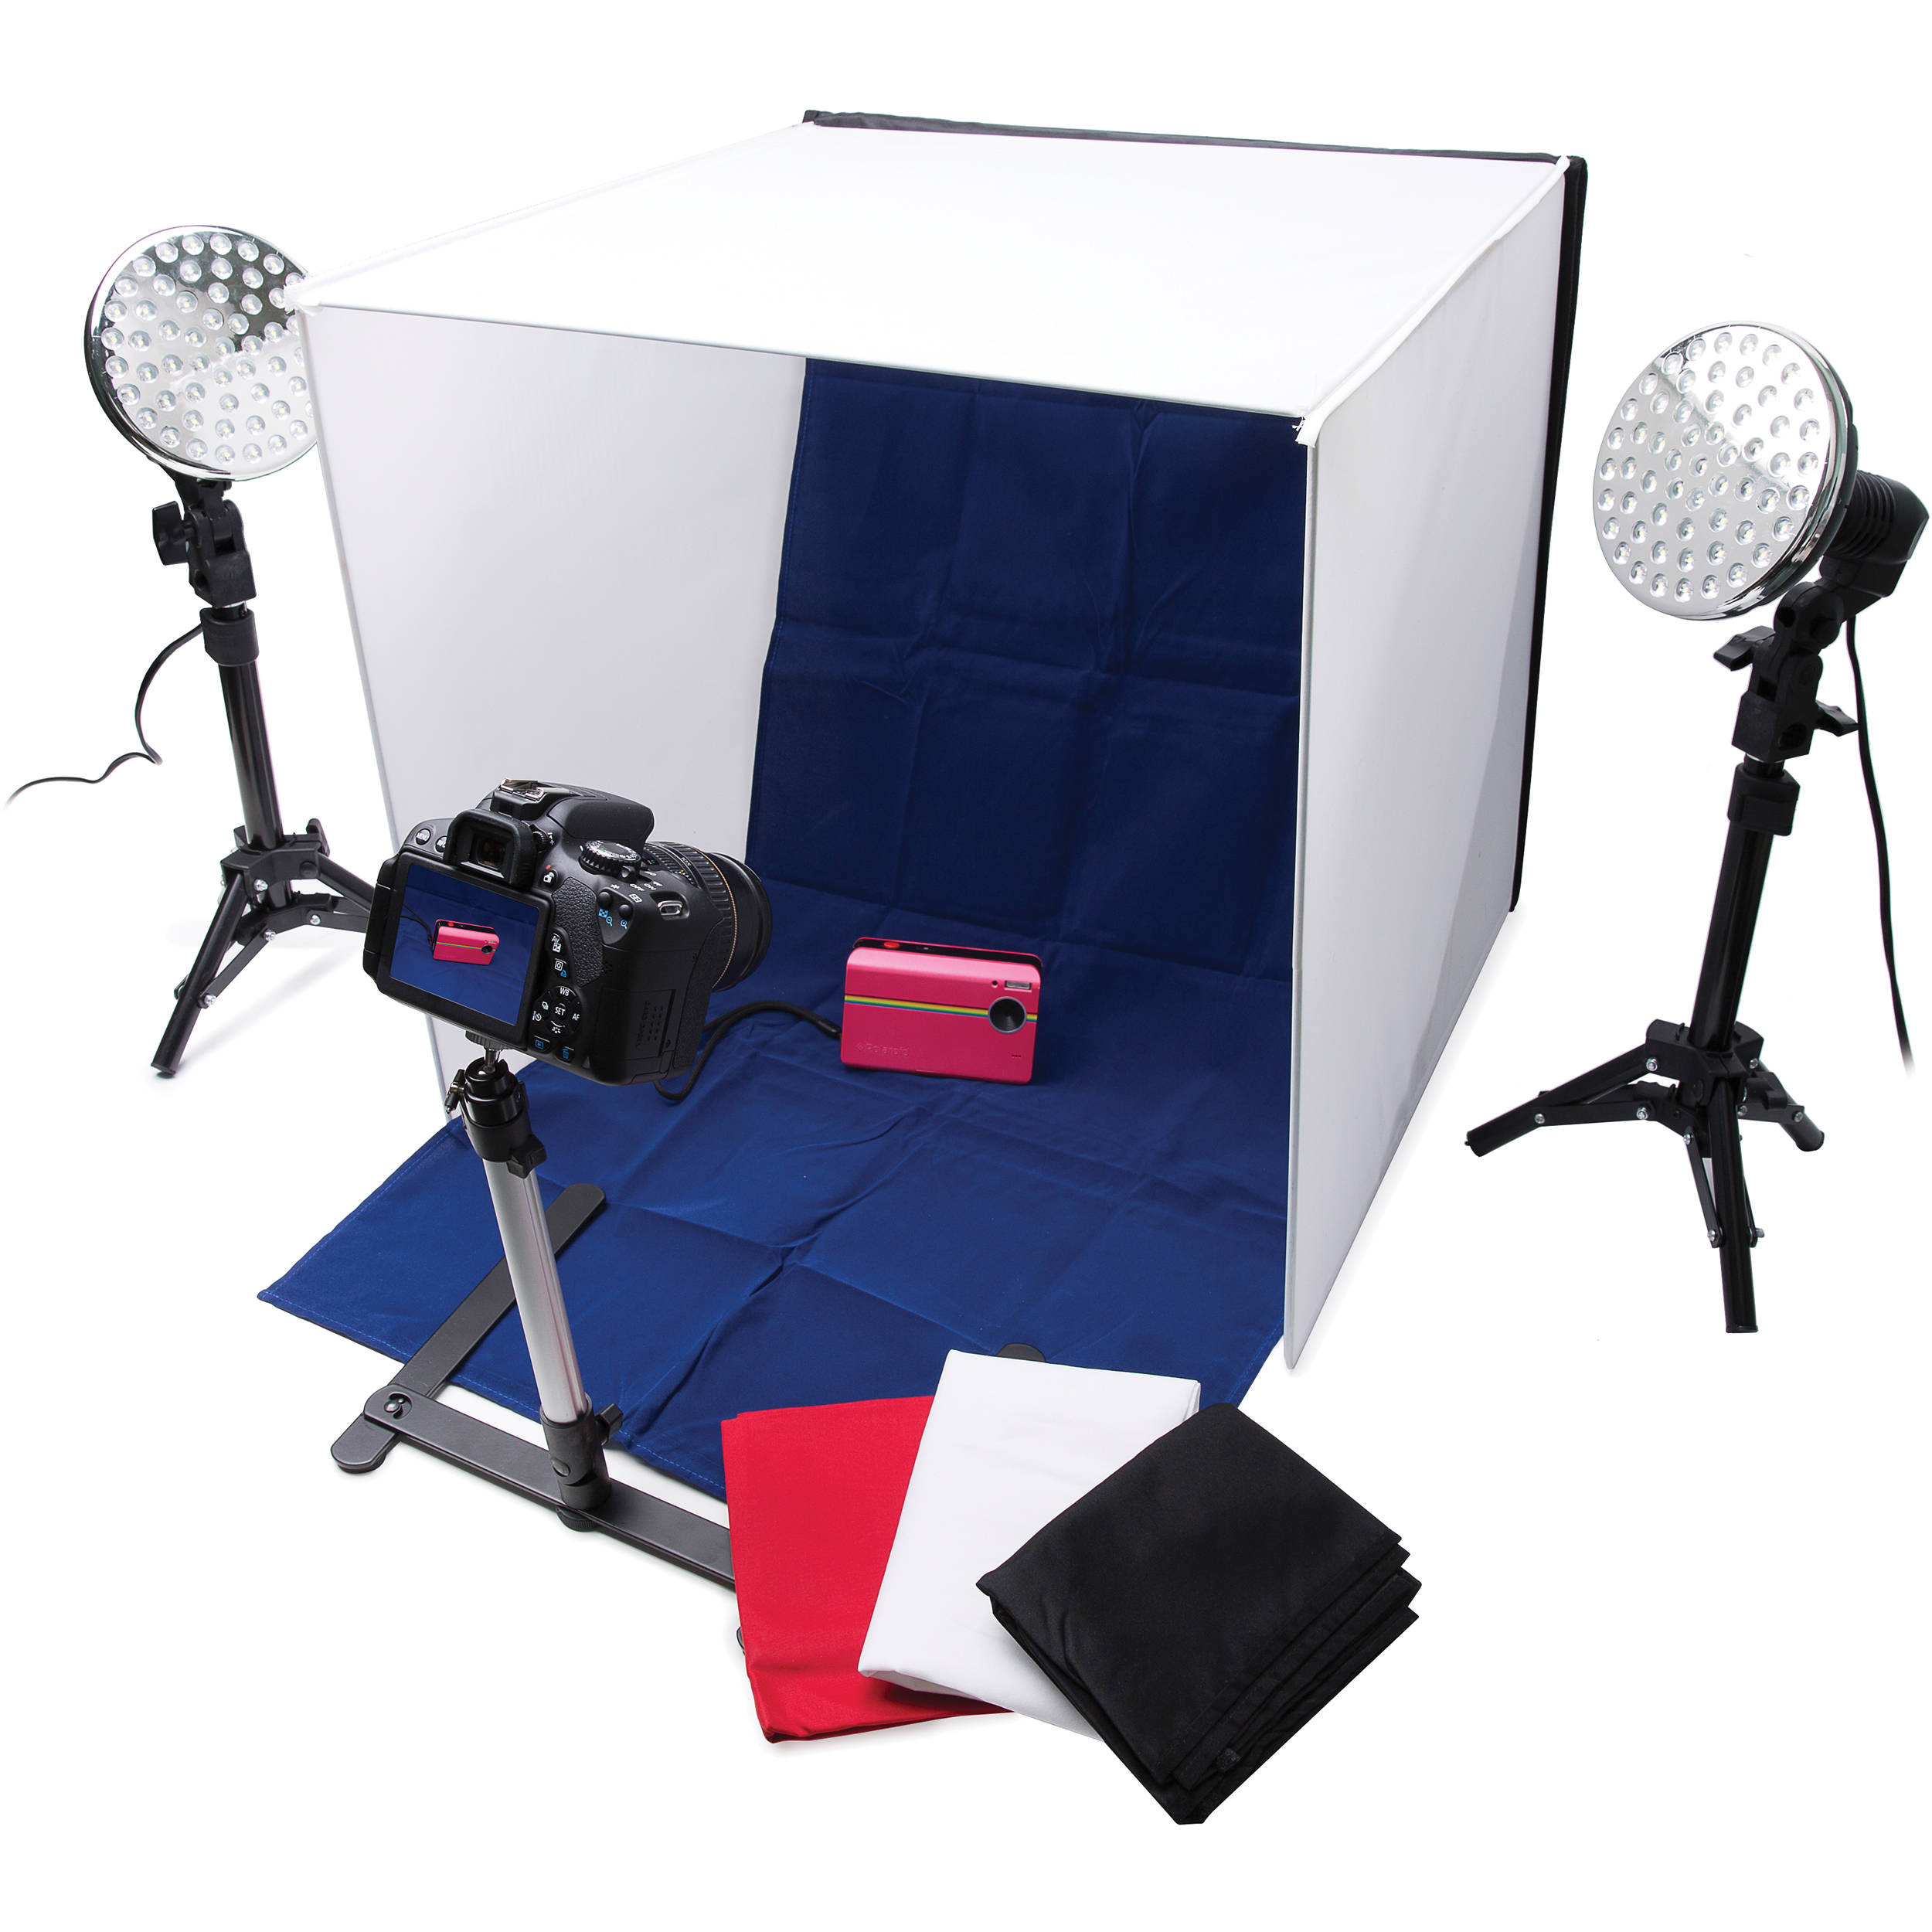 Polaroid Pro Table Top Photo Studio Kit Plpsled B H Photo Video